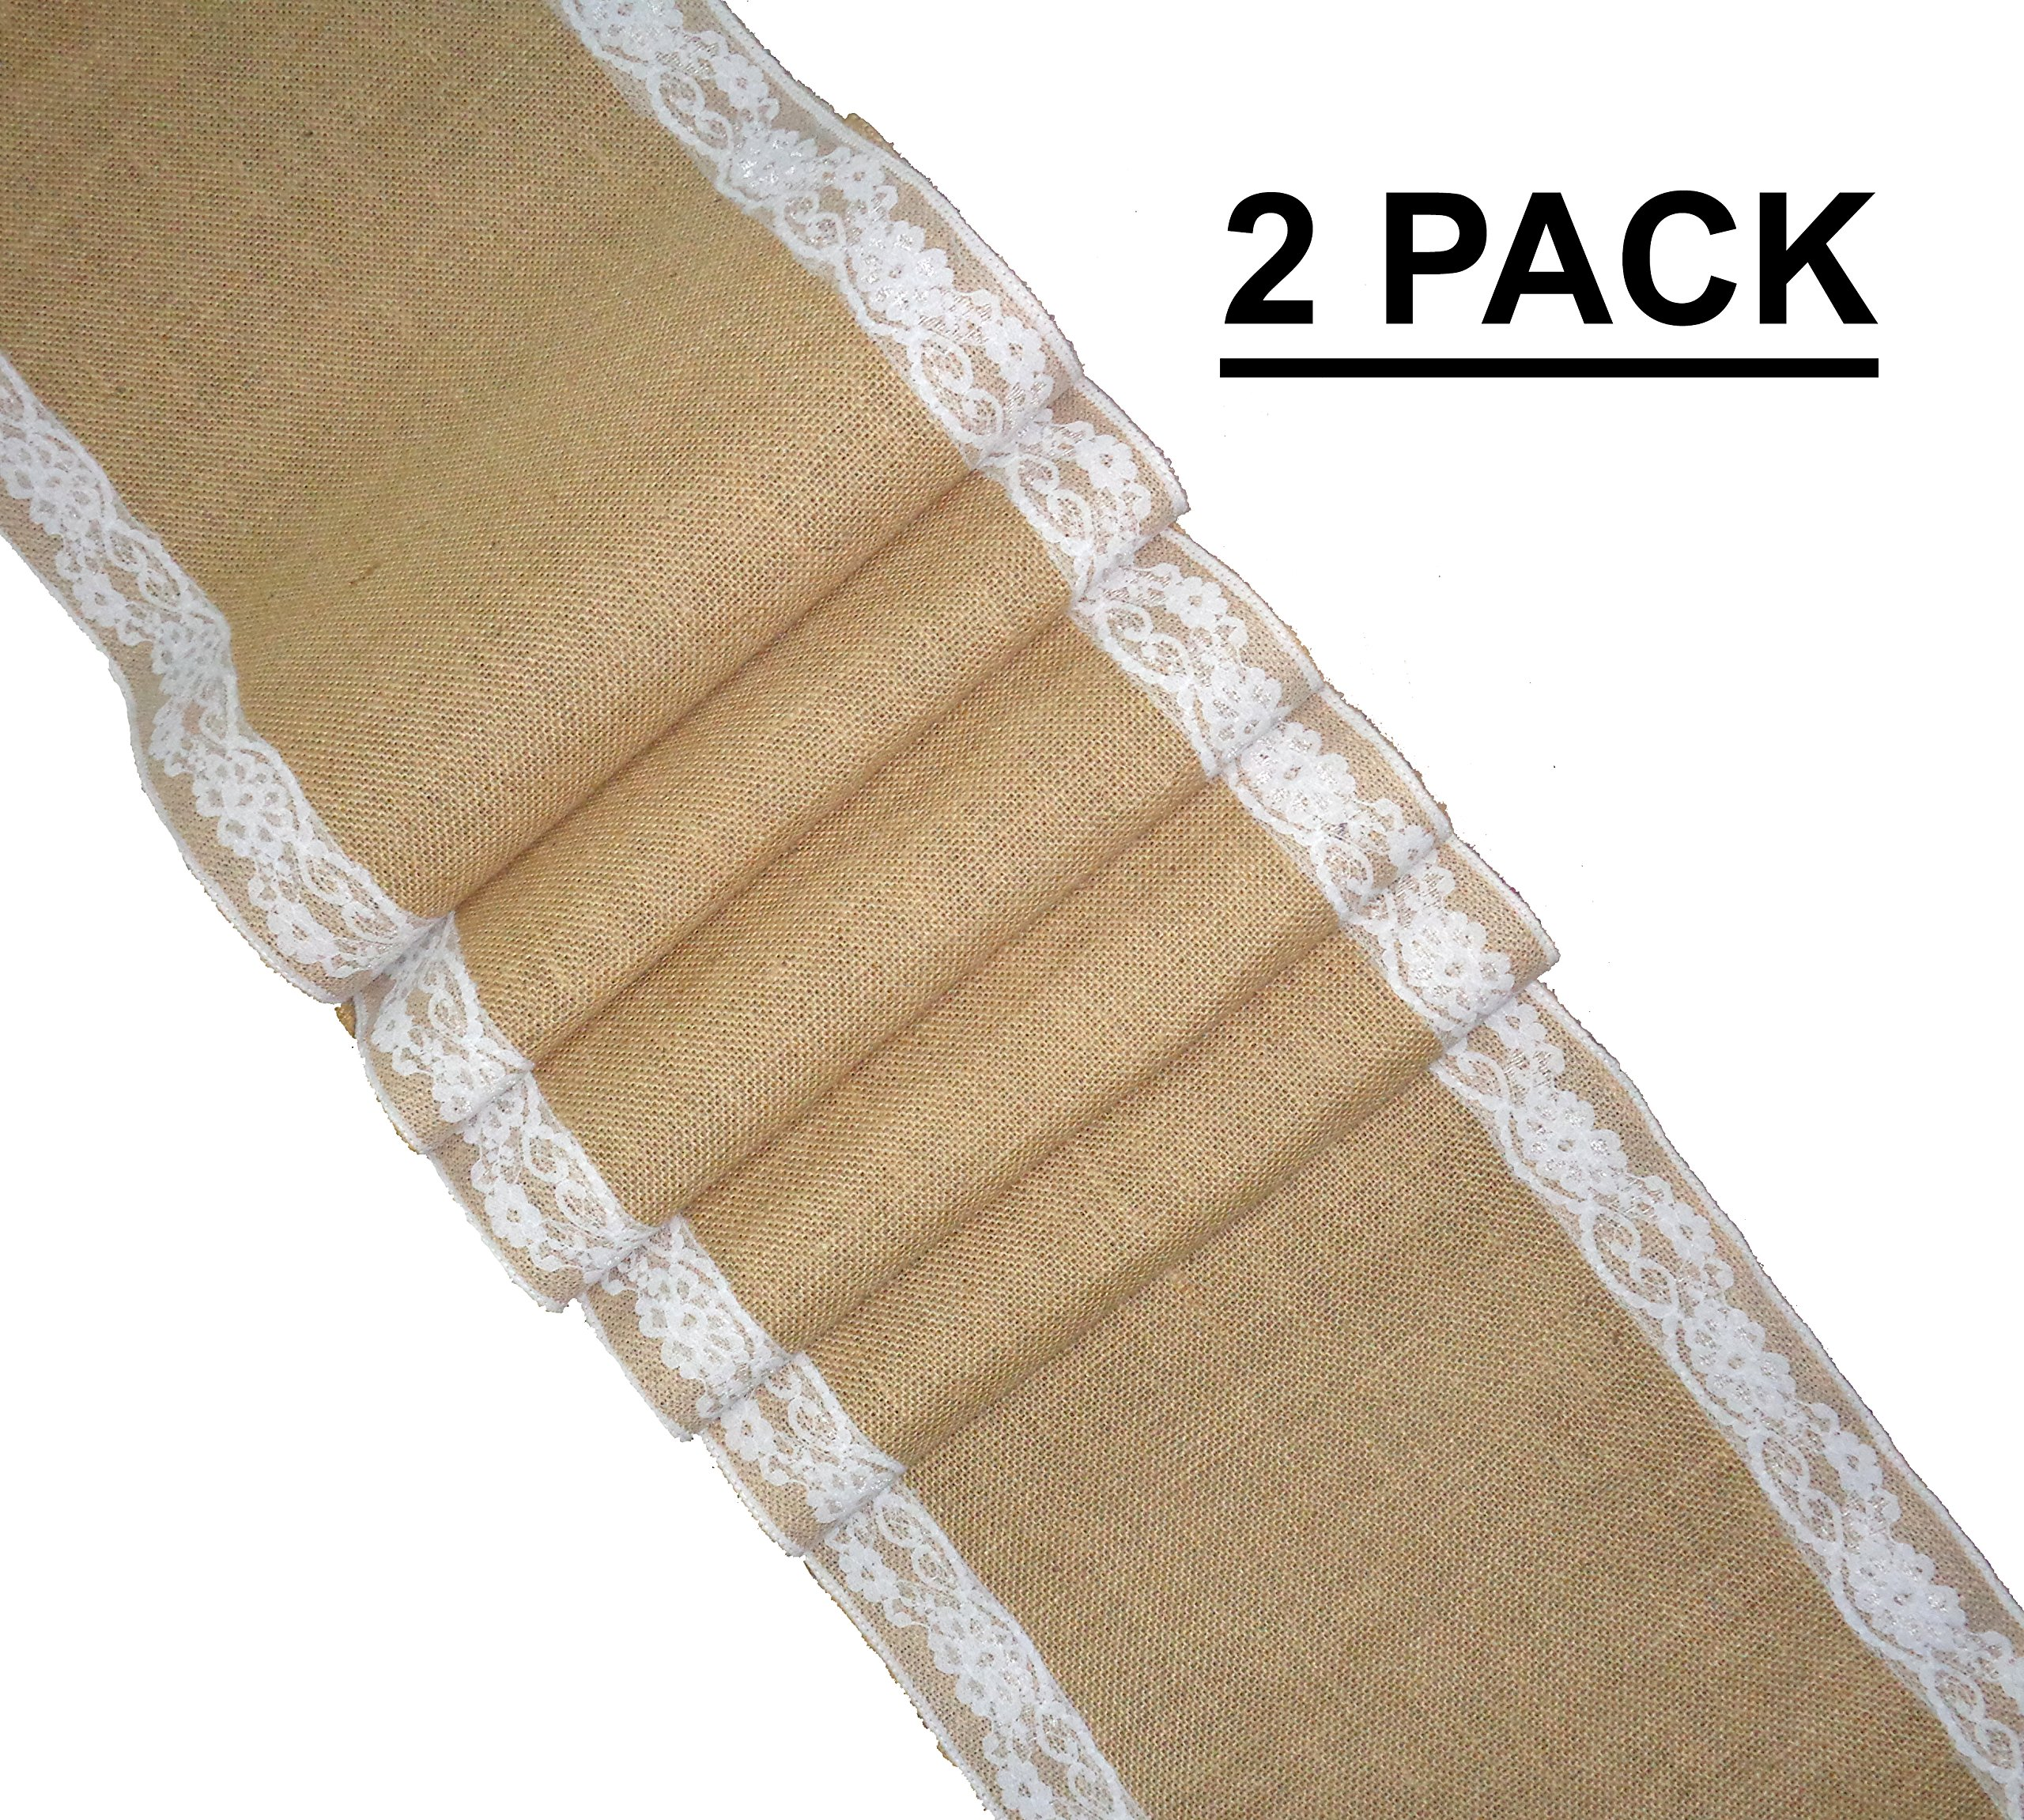 Cotton Craft - 2 Pack - Jute Burlap with Lace Table Runner 12x108 - Natural - Perfect accessory to dress up your dinner table - Spot Clean Only by Cotton Craft (Image #1)